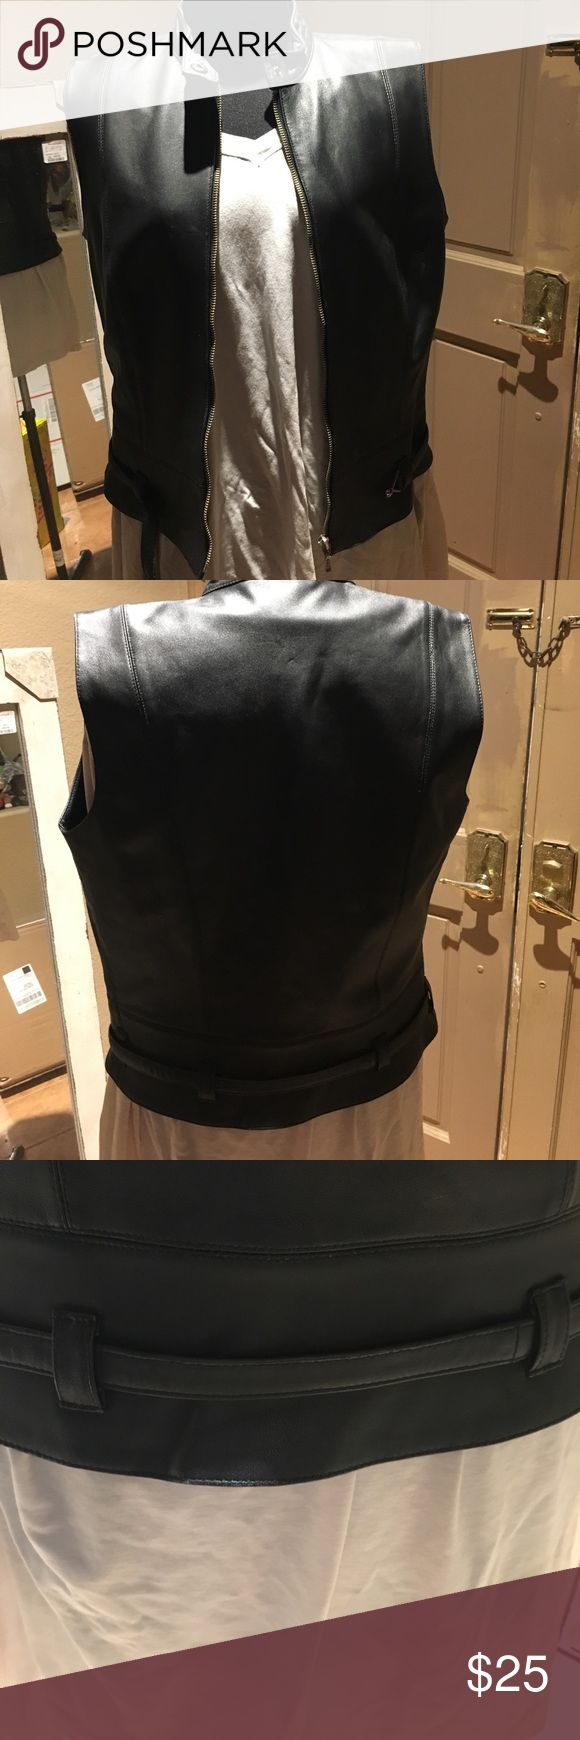 Cabi size Small Motorcycle Leather Vest This vest is made of black leather with a satin lining. Zippers up the front with a cool hook strap around the front. Bust measures about 36 inches, length about 21 1/2 inches. In excellent condition CAbi Jackets & Coats Vests